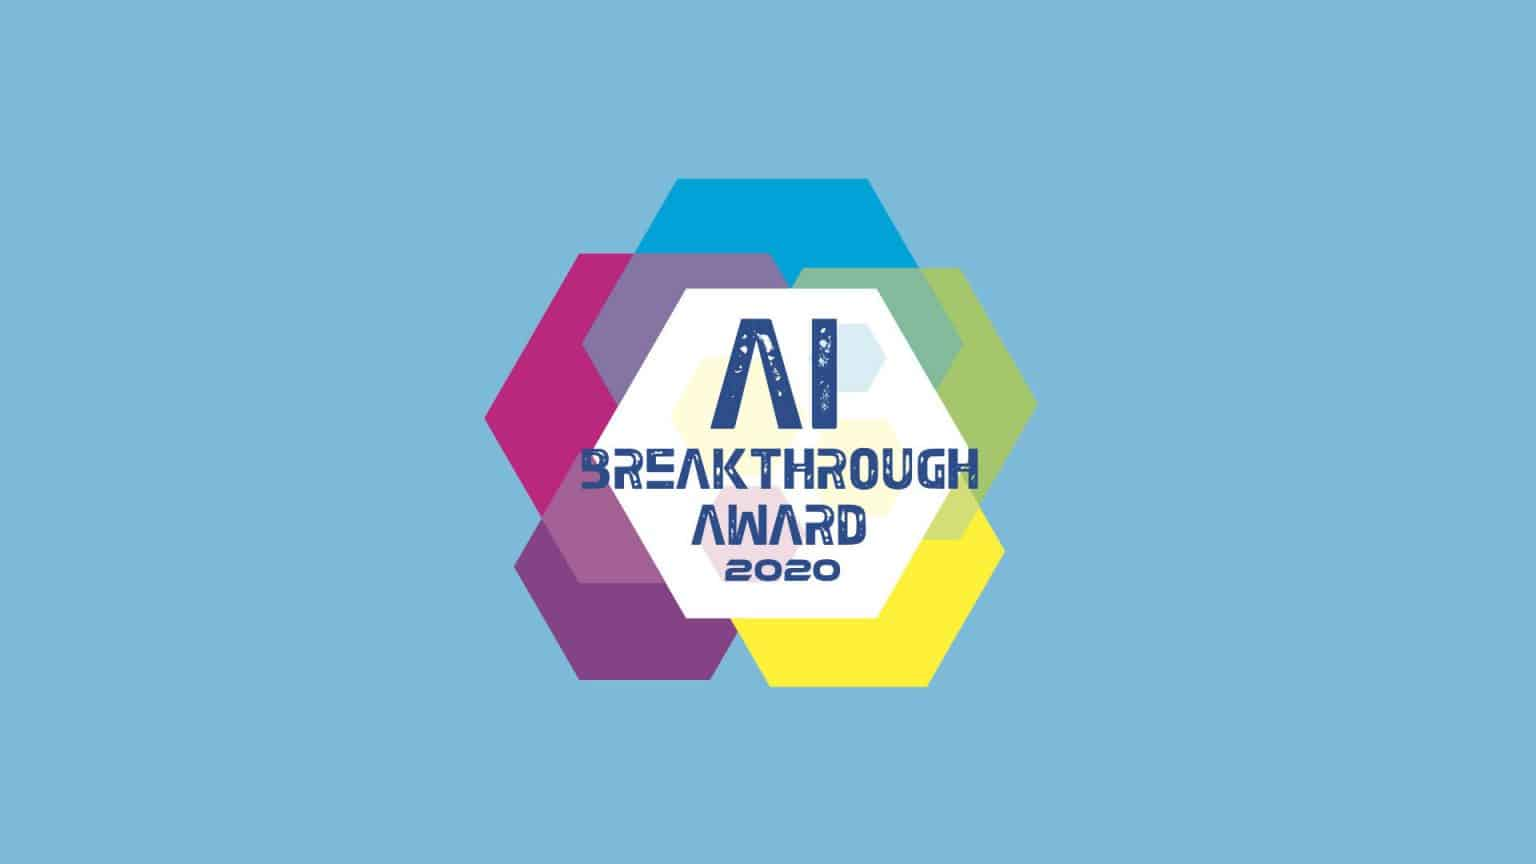 Audio Analytic won 'Best Overall AI Company' in the AI Breakthrough Awards